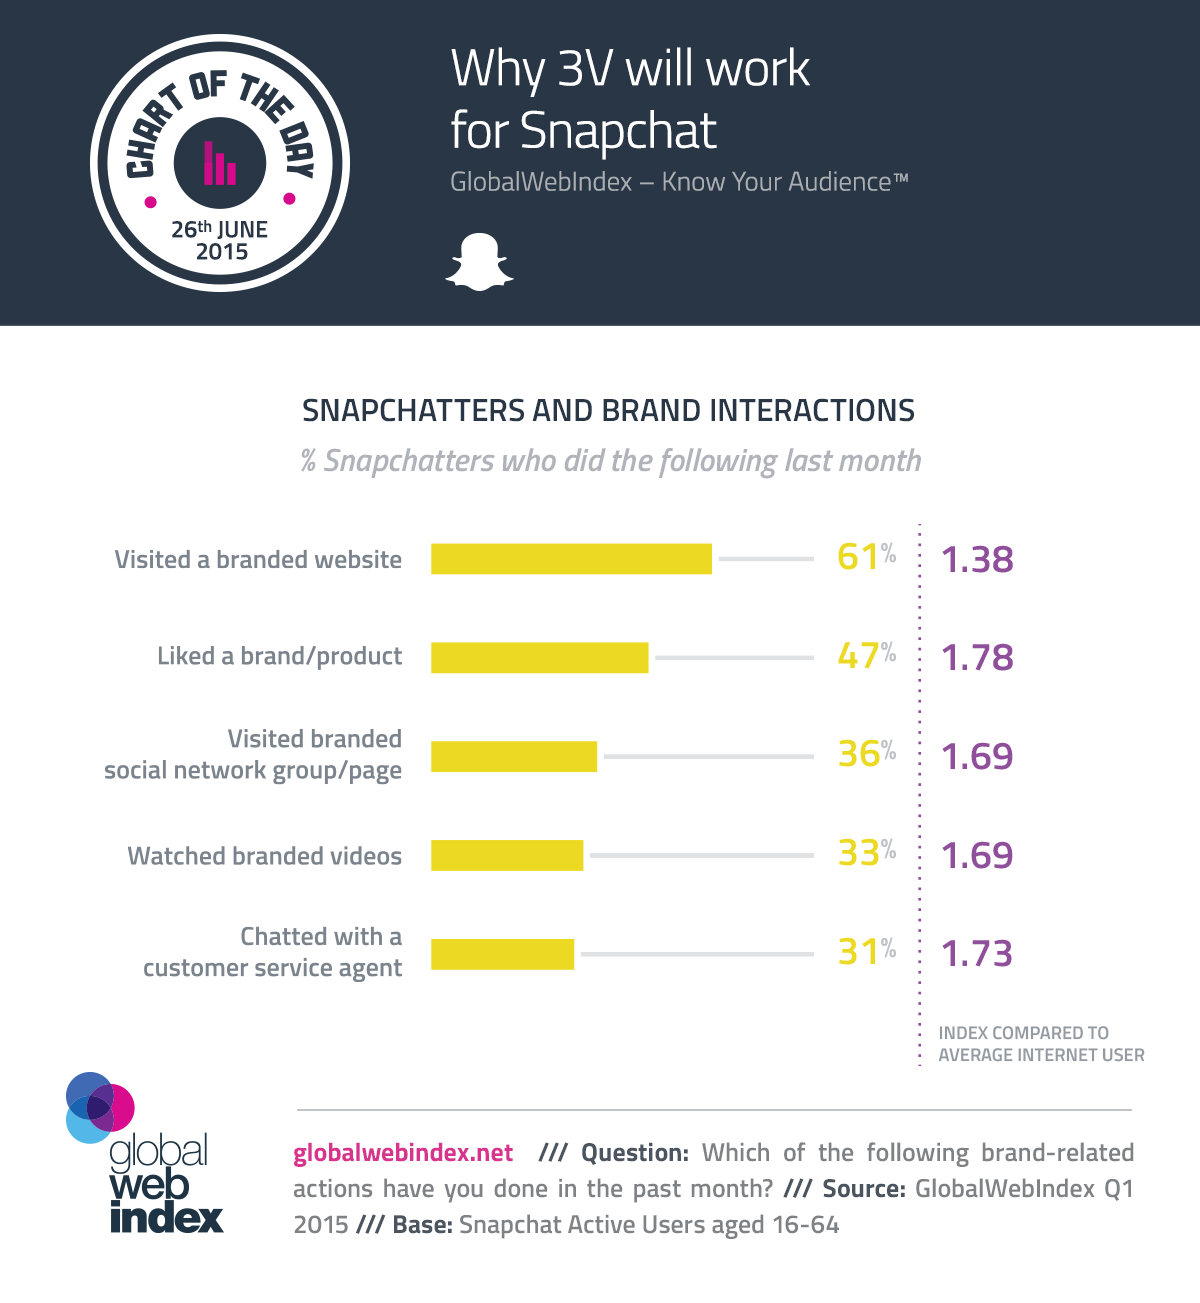 26th-June-2015-Why-3V-will-work-for-Snapchat